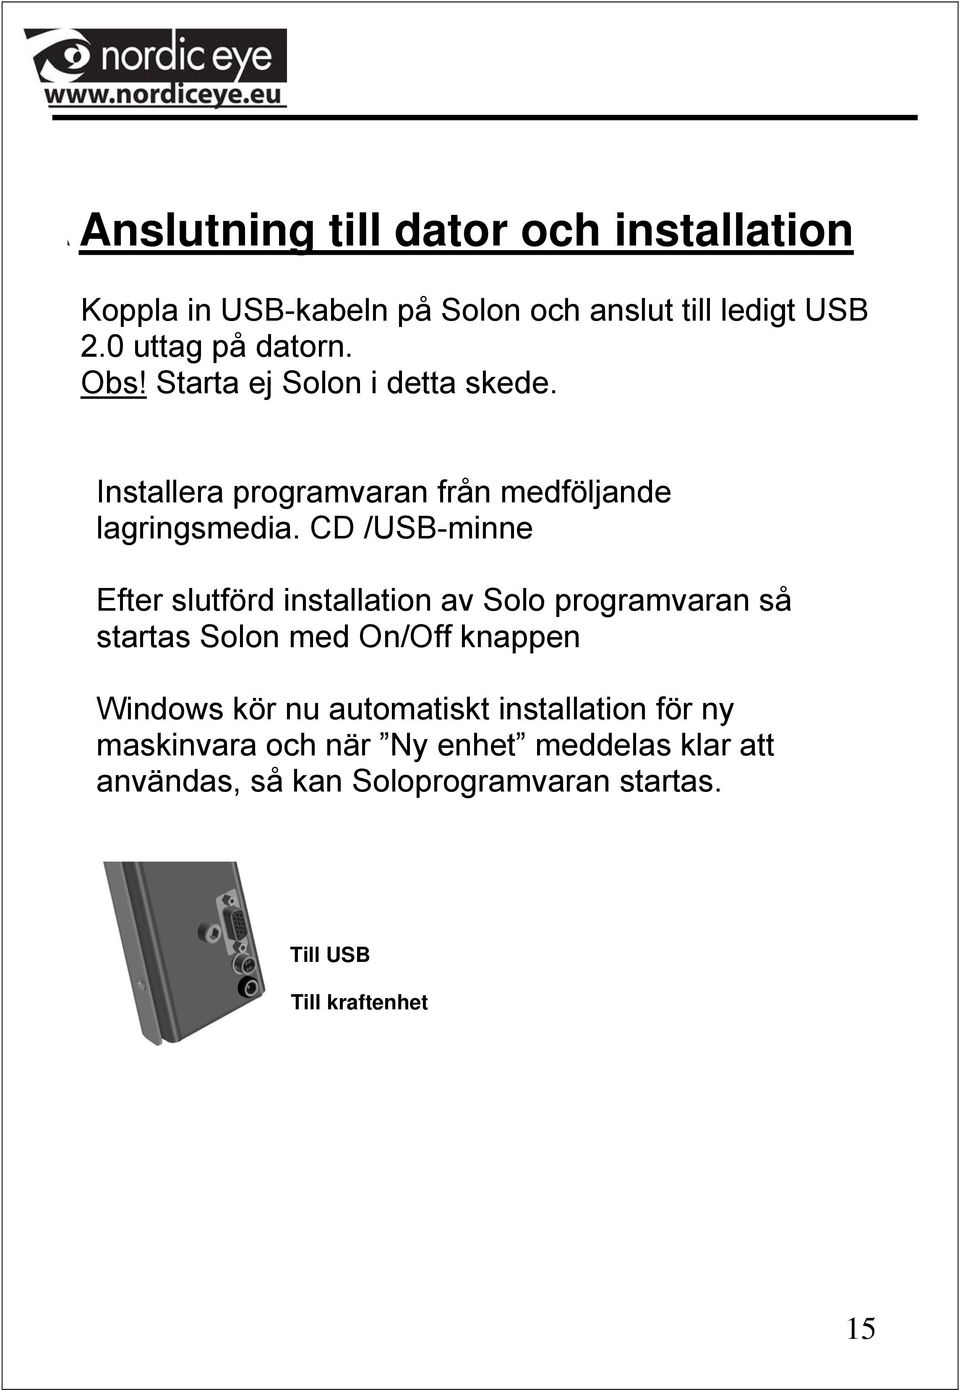 CD /USB-minne Efter slutförd installation av Solo programvaran så startas Solon med On/Off knappen Windows kör nu